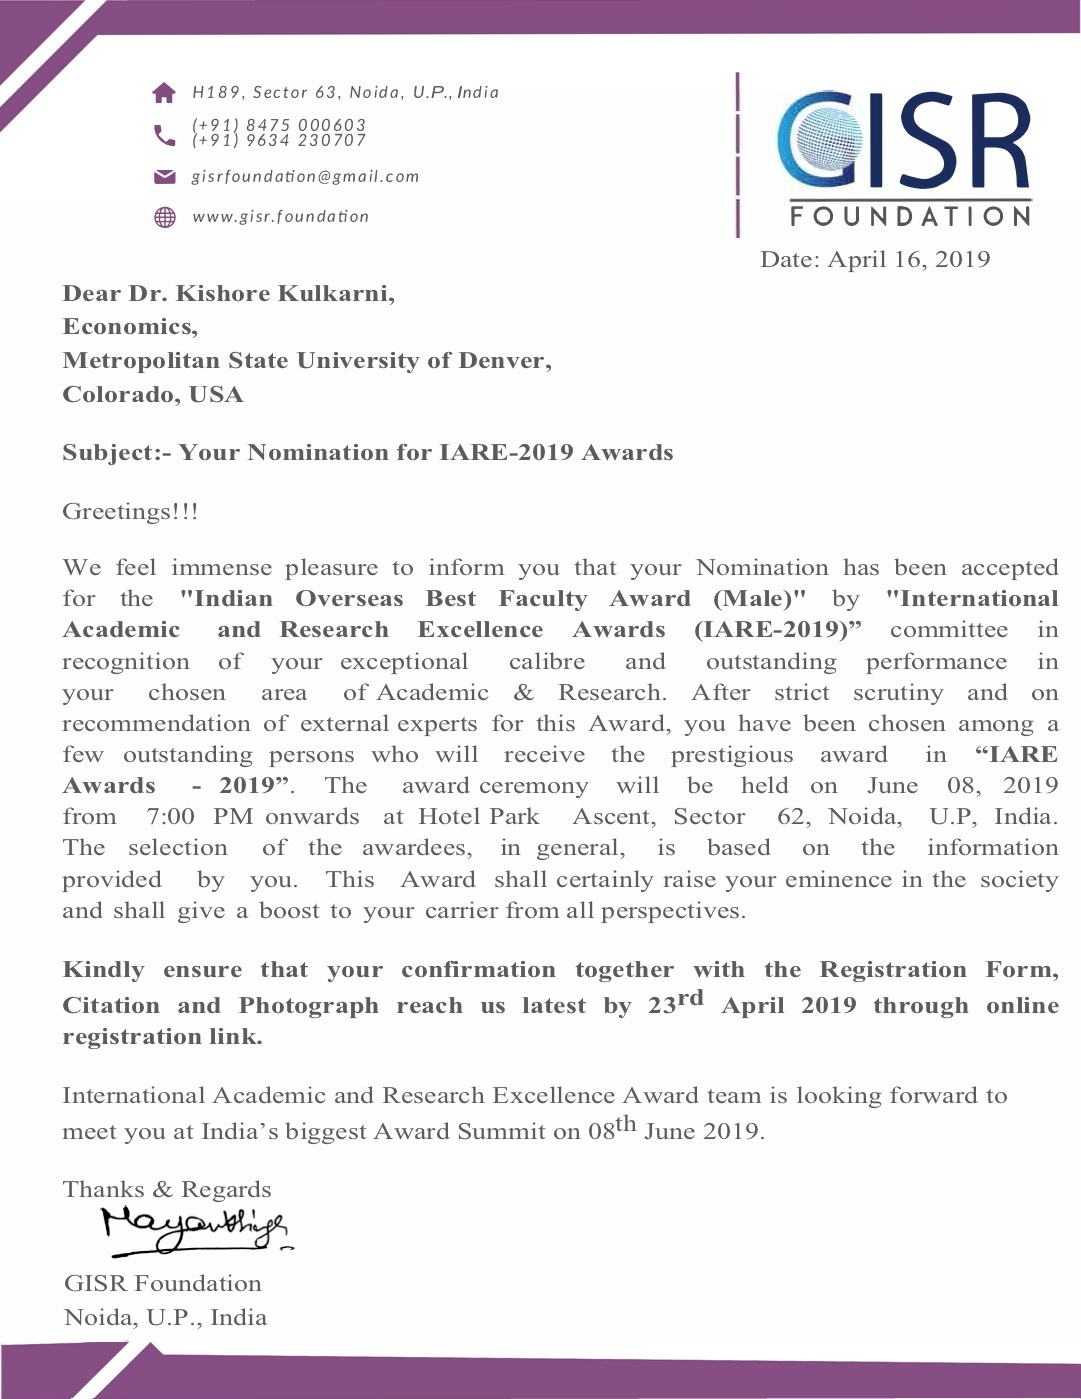 IARE1901105+-+Dr.+Kishore+Kulkarni+award+letter+from+GISR+Foundation.jpg